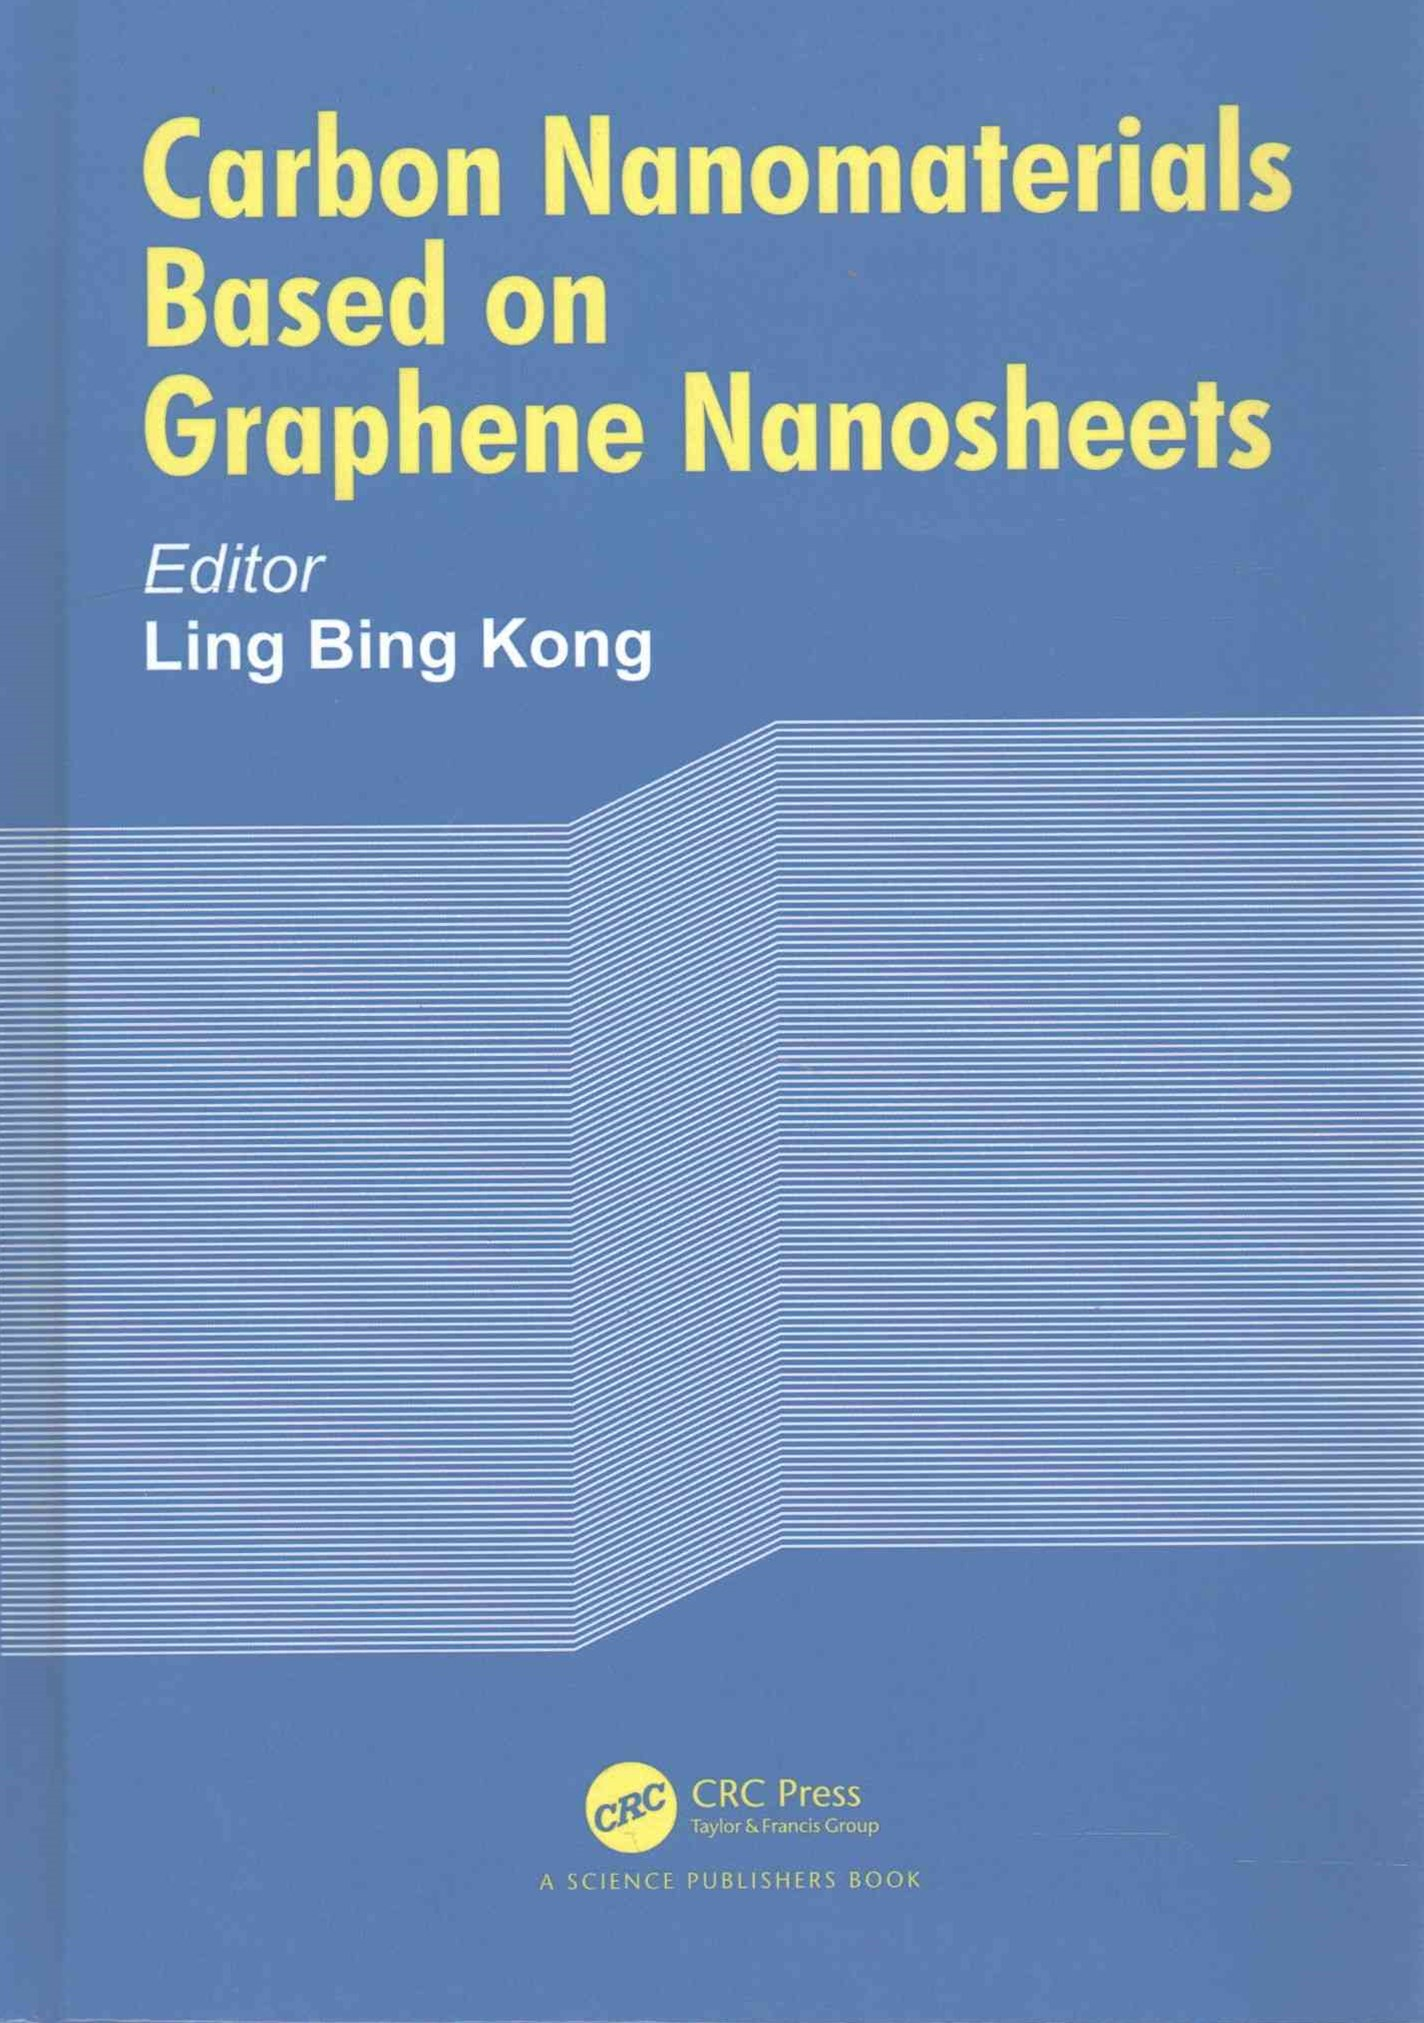 Carbon Nanomaterials Based on Graphene Nanosheets